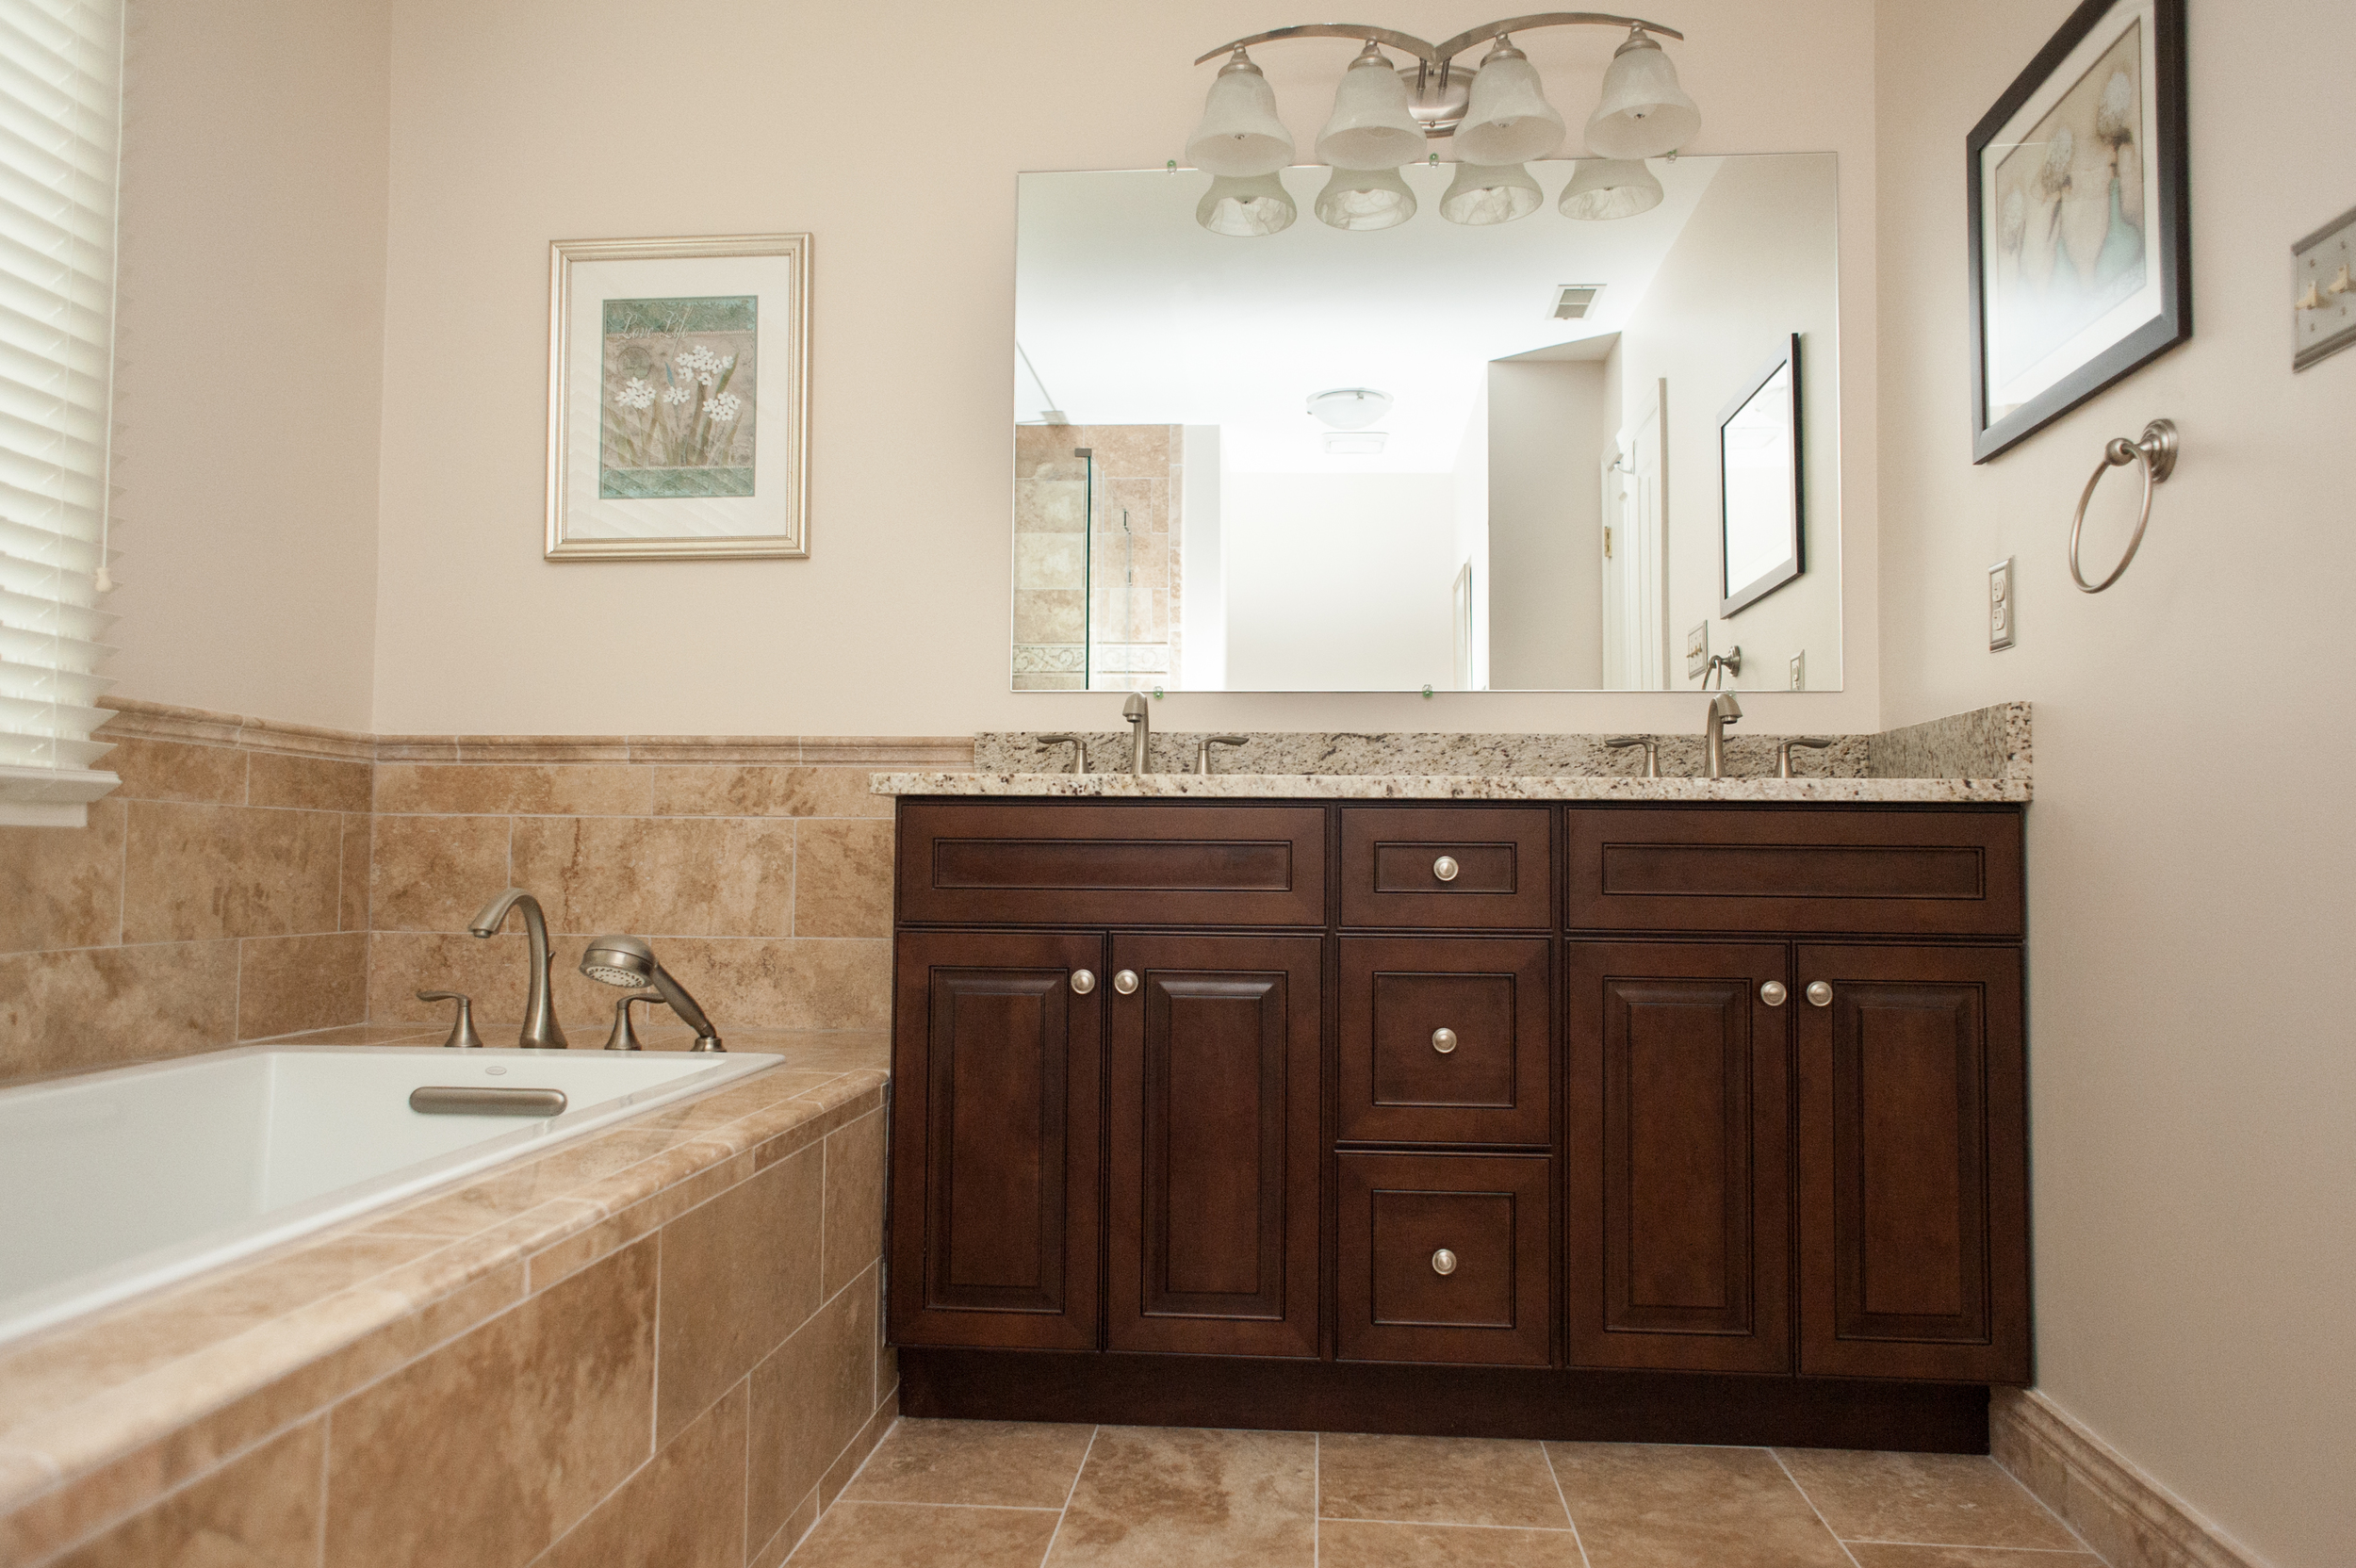 Bathroom Remodeling Annapolis Gvidui Bathroom Remodeling — Euro Design Remodel  Remodeler With .